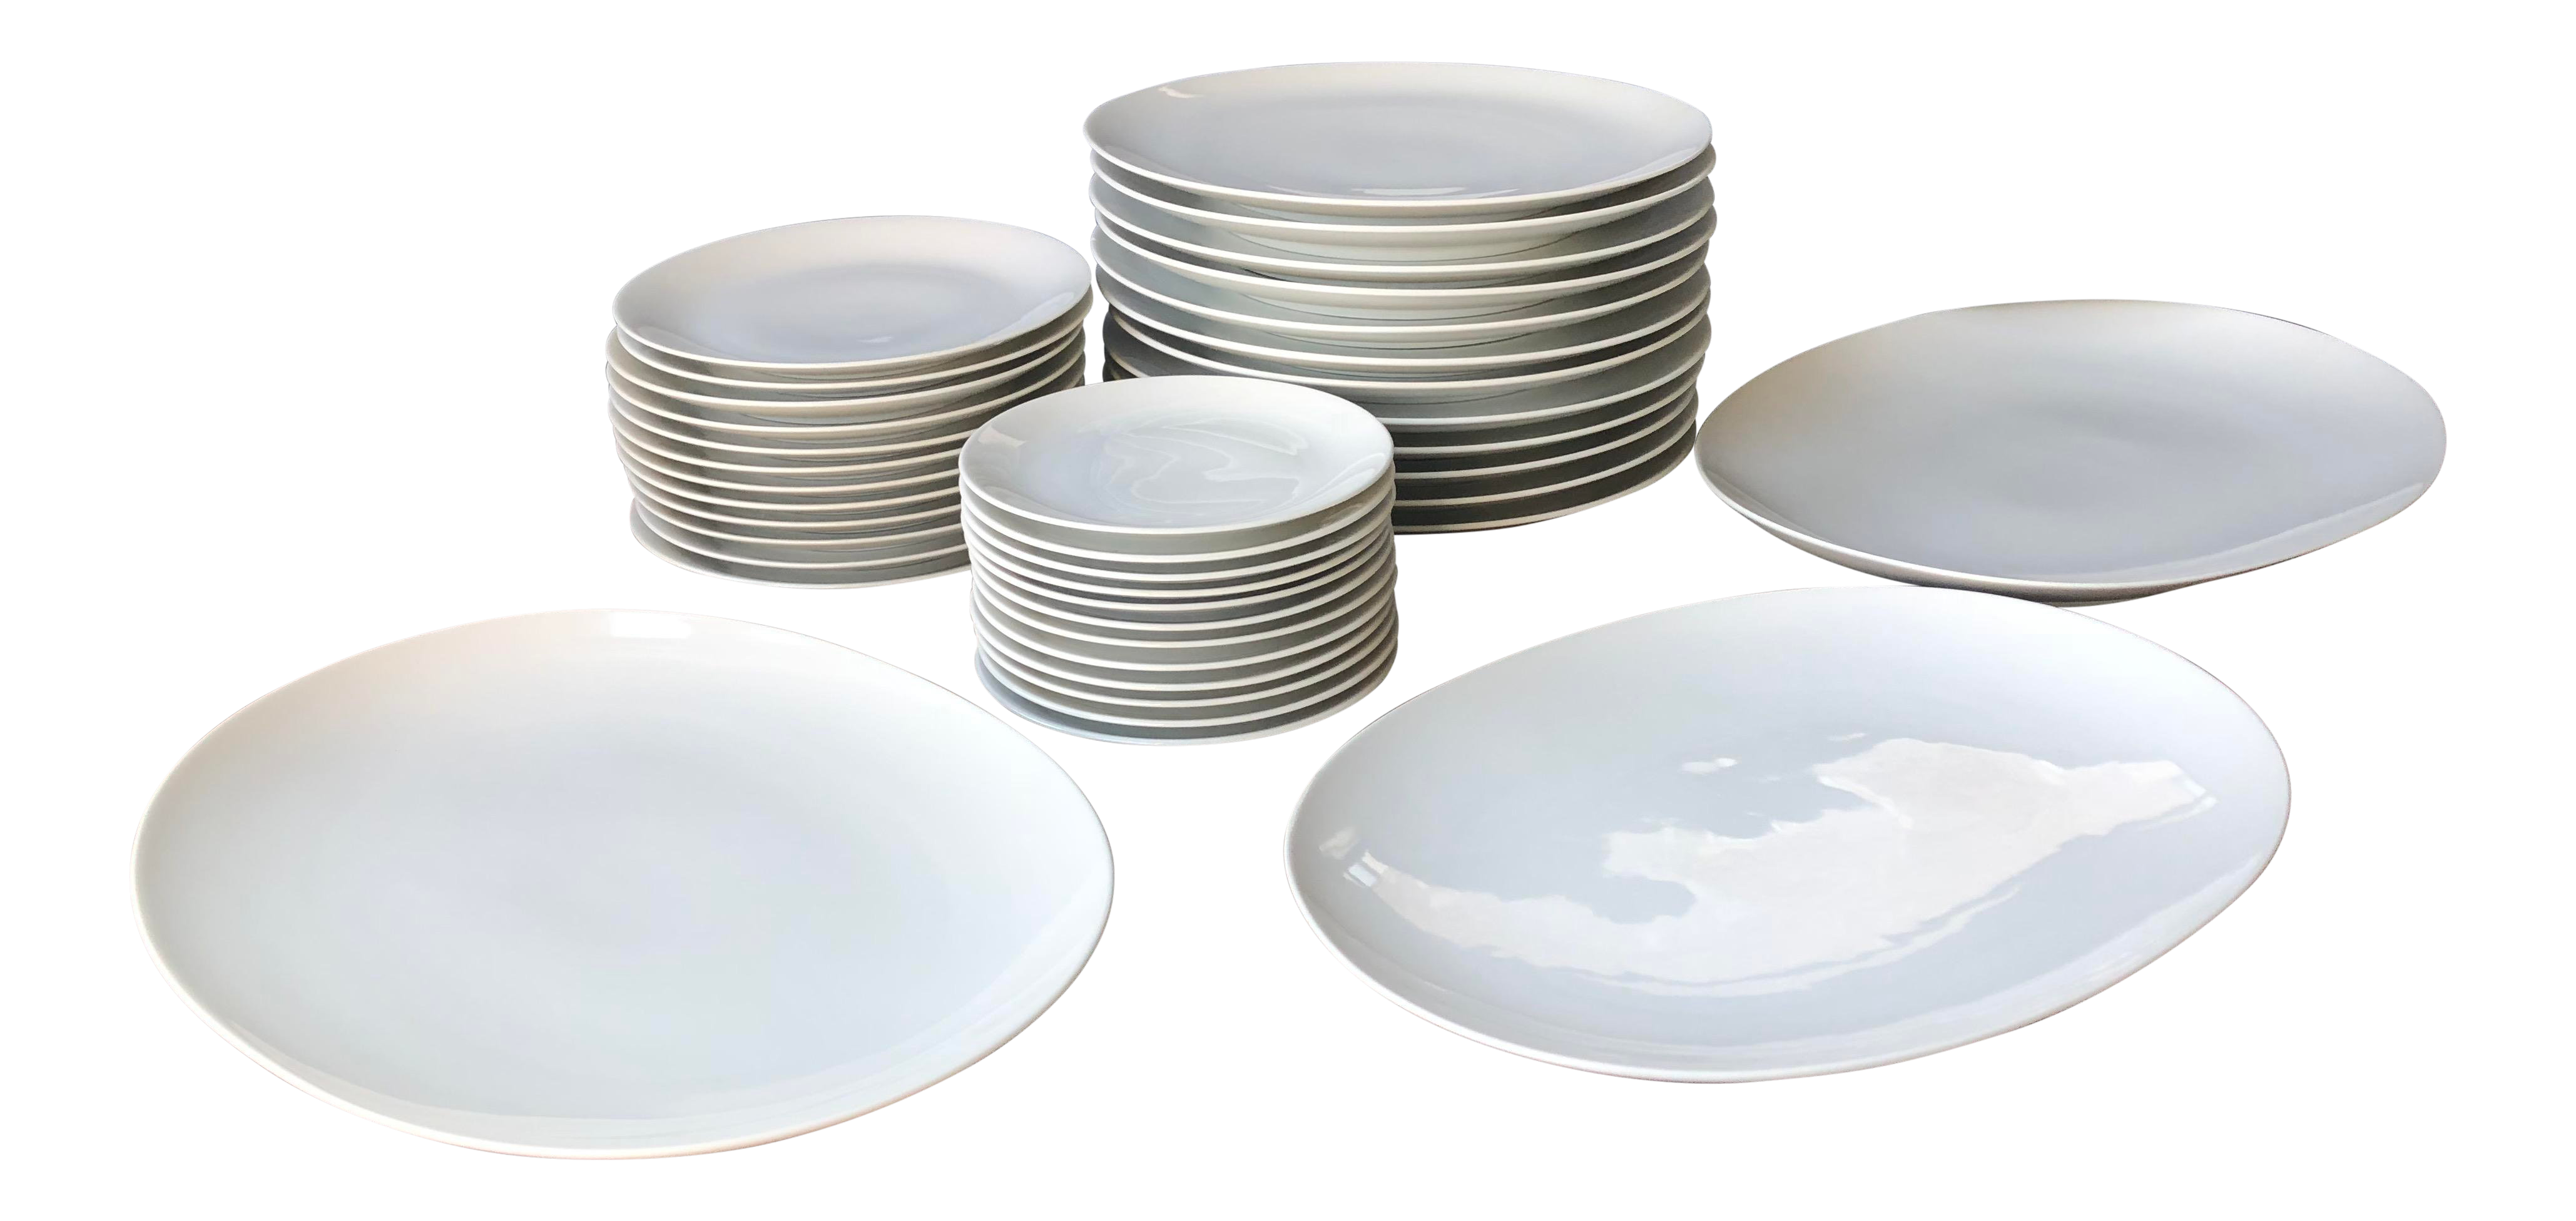 Vintage Mid Century Modern Rosenthal Continental China 10 18 Dinner Plates Designed by Raymond Loewy Germany Black /& White SCRIPT PATTERN